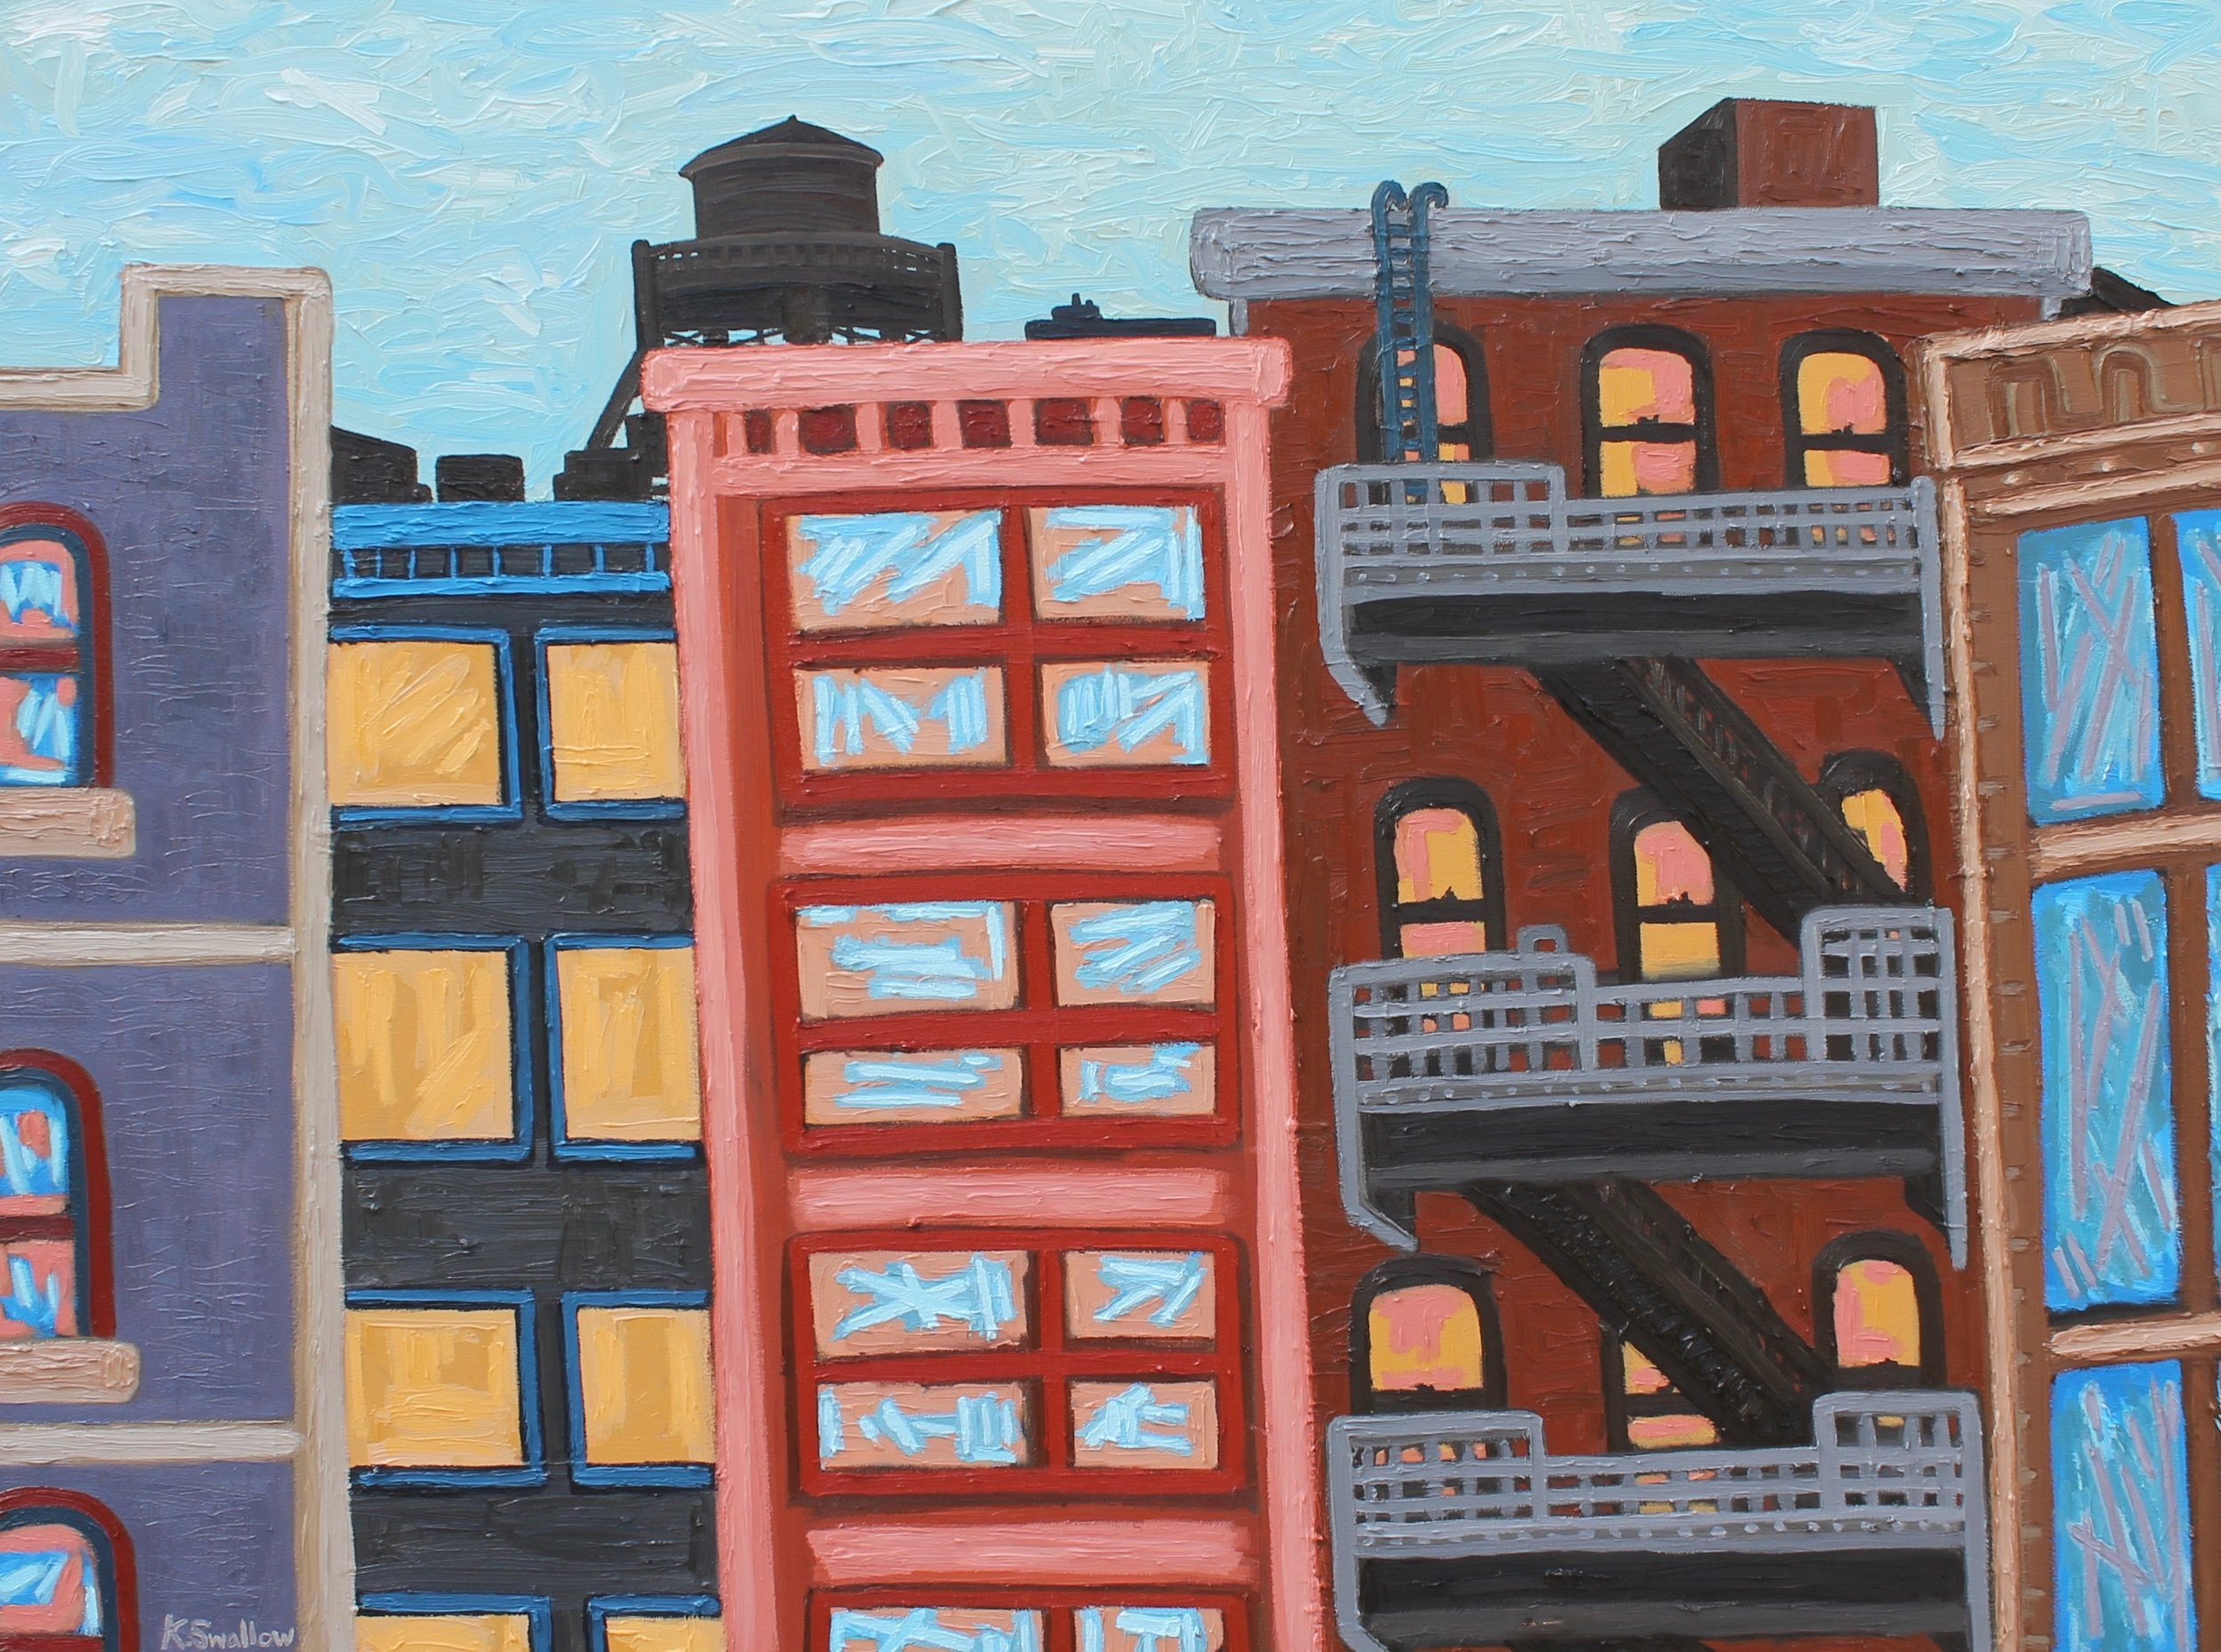 Wooster & Broome St. - NYC , oil on canvas, 36x48, 2017